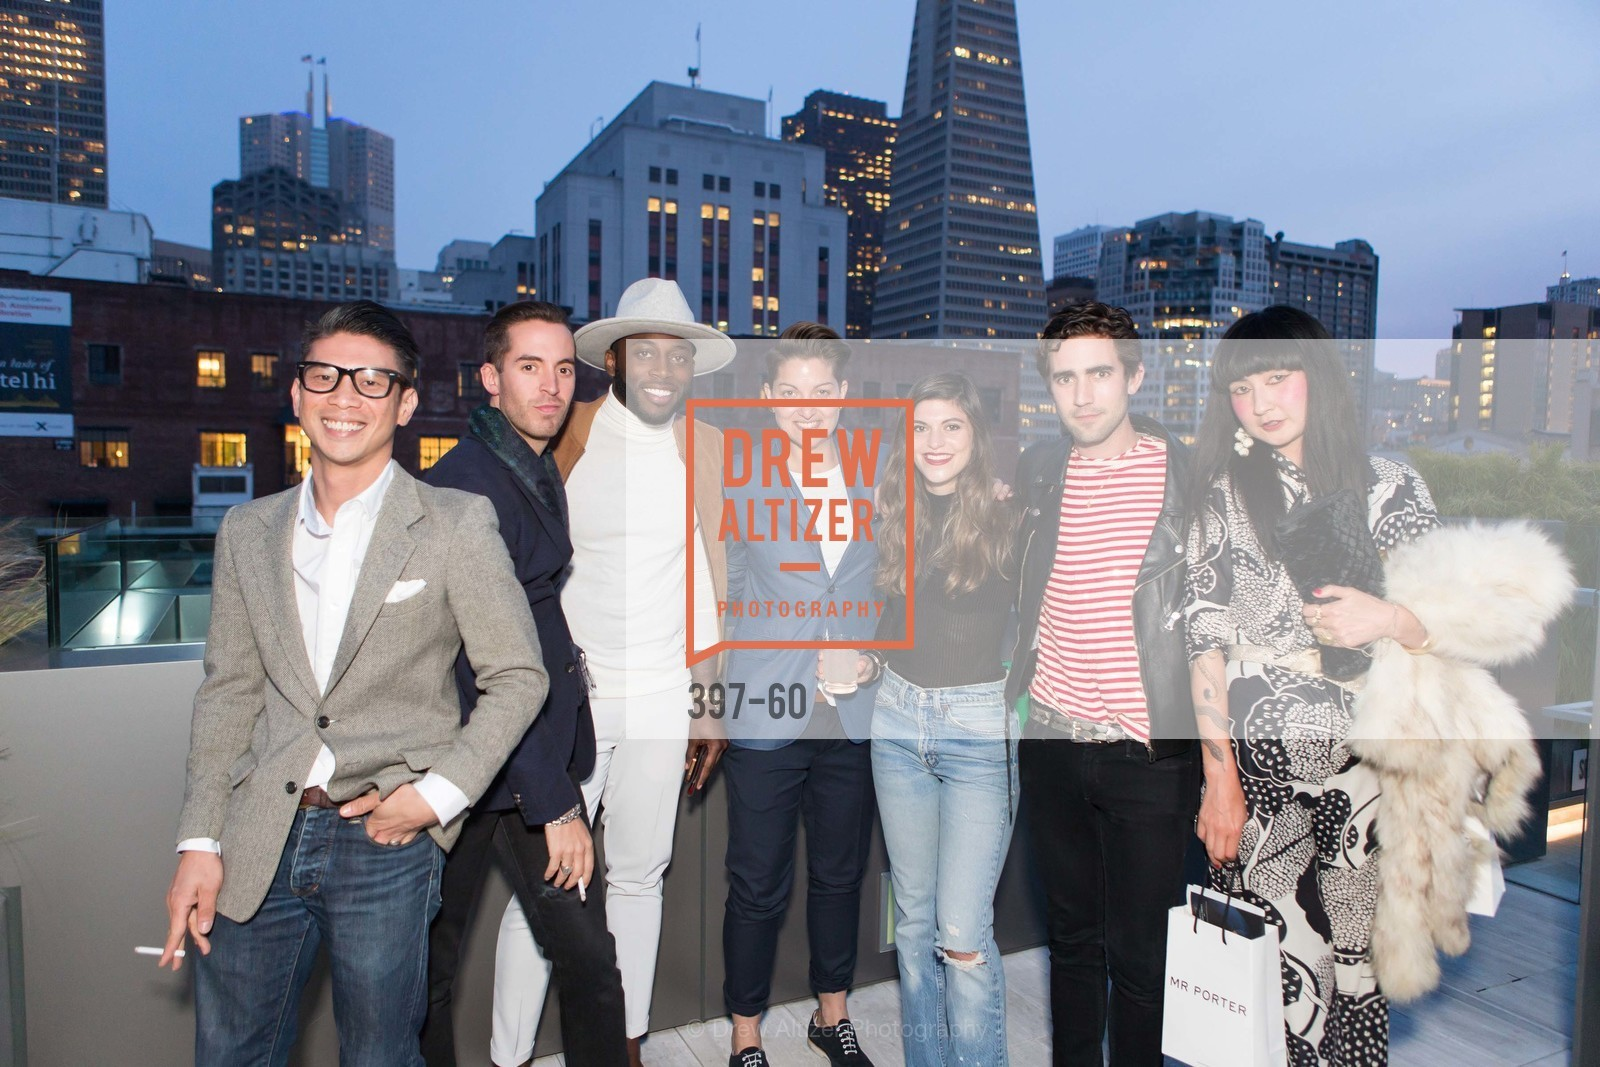 Fidel Lirio, Steven Candelino, Phillip Holmes, Tulio Leyva, Liz Sharnet, Wyatt Huff, Ringka, MR PORTER Celebrate The San Francisco Issue of The Journal, The Battery Rooftop - The Battery SF, April 23rd, 2015,Drew Altizer, Drew Altizer Photography, full-service agency, private events, San Francisco photographer, photographer california